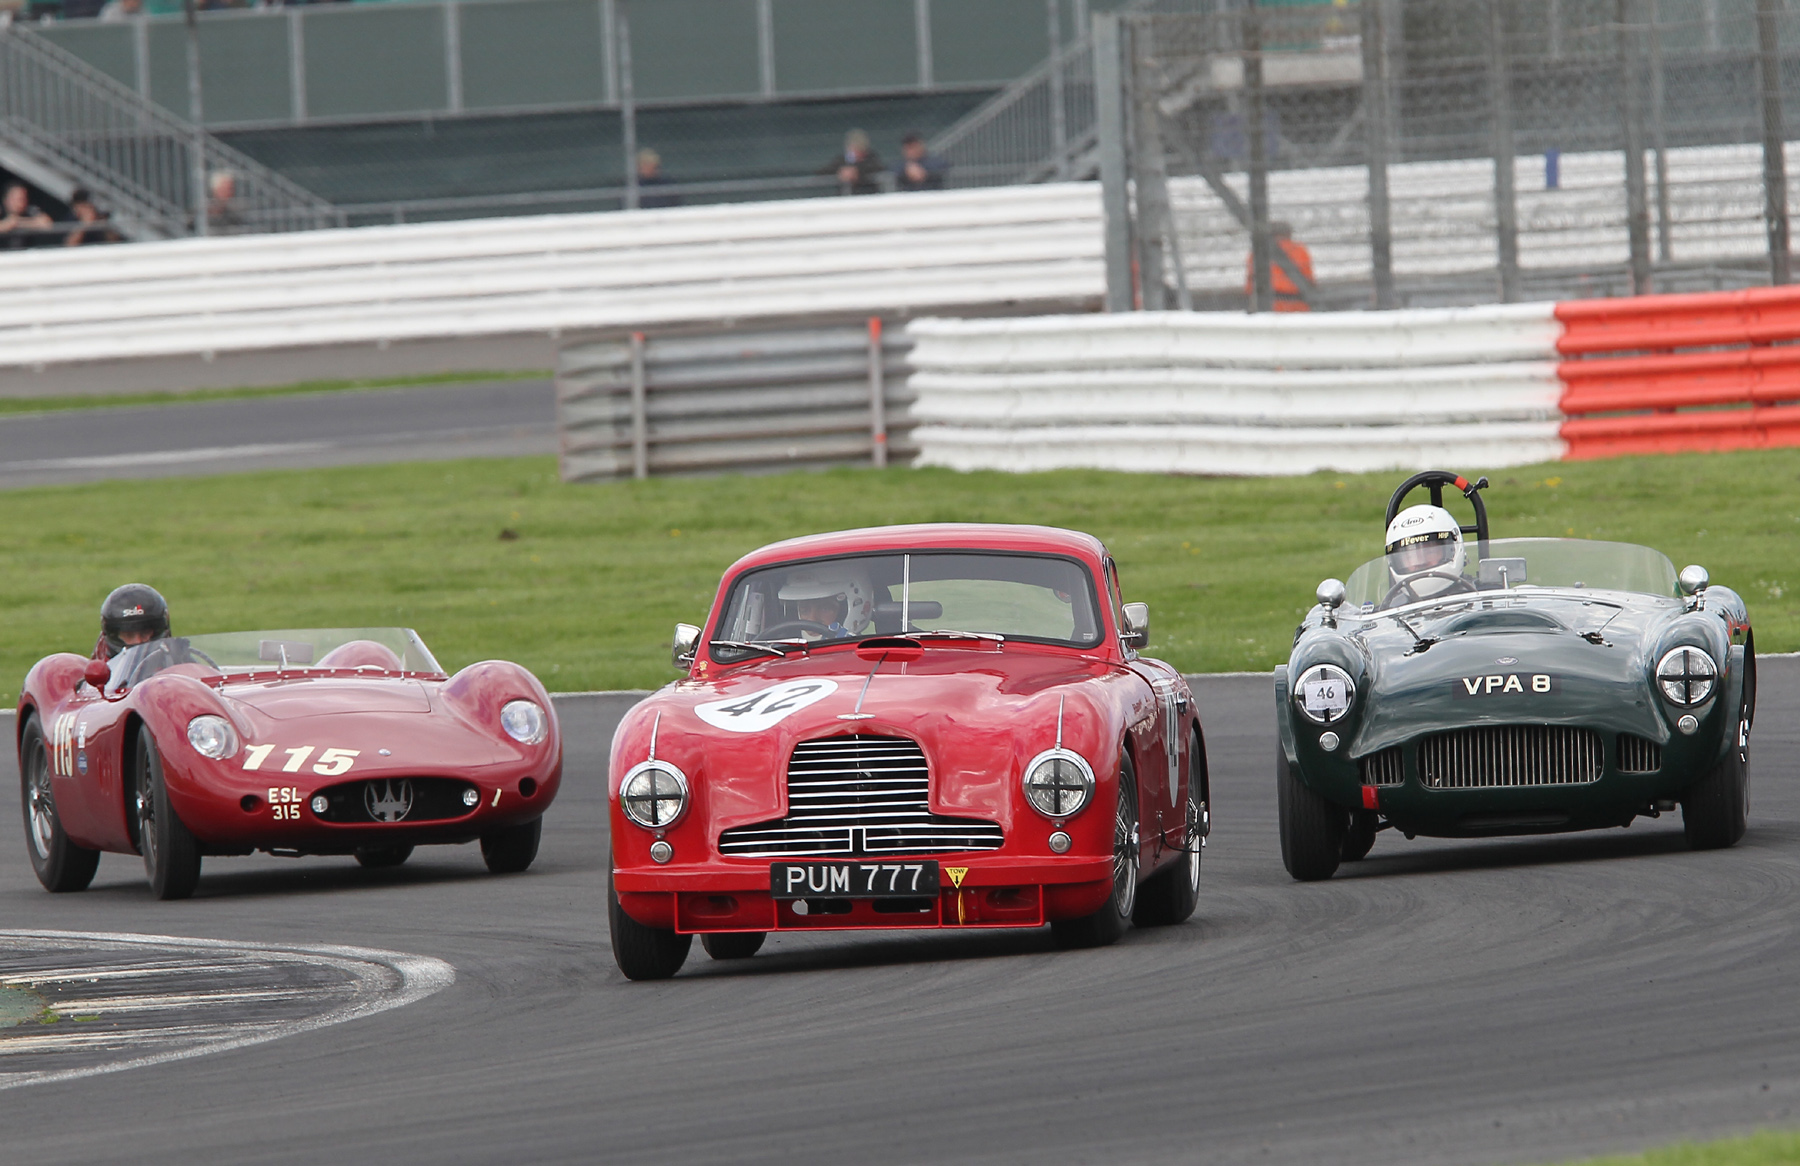 Martin Hunt still just has the lead as he and Richard Wilson come up to lap Paul Chase-Gardener in the Aston Martin DB2. What a fabulous trio of cars , captured superbly by Mick Walker.